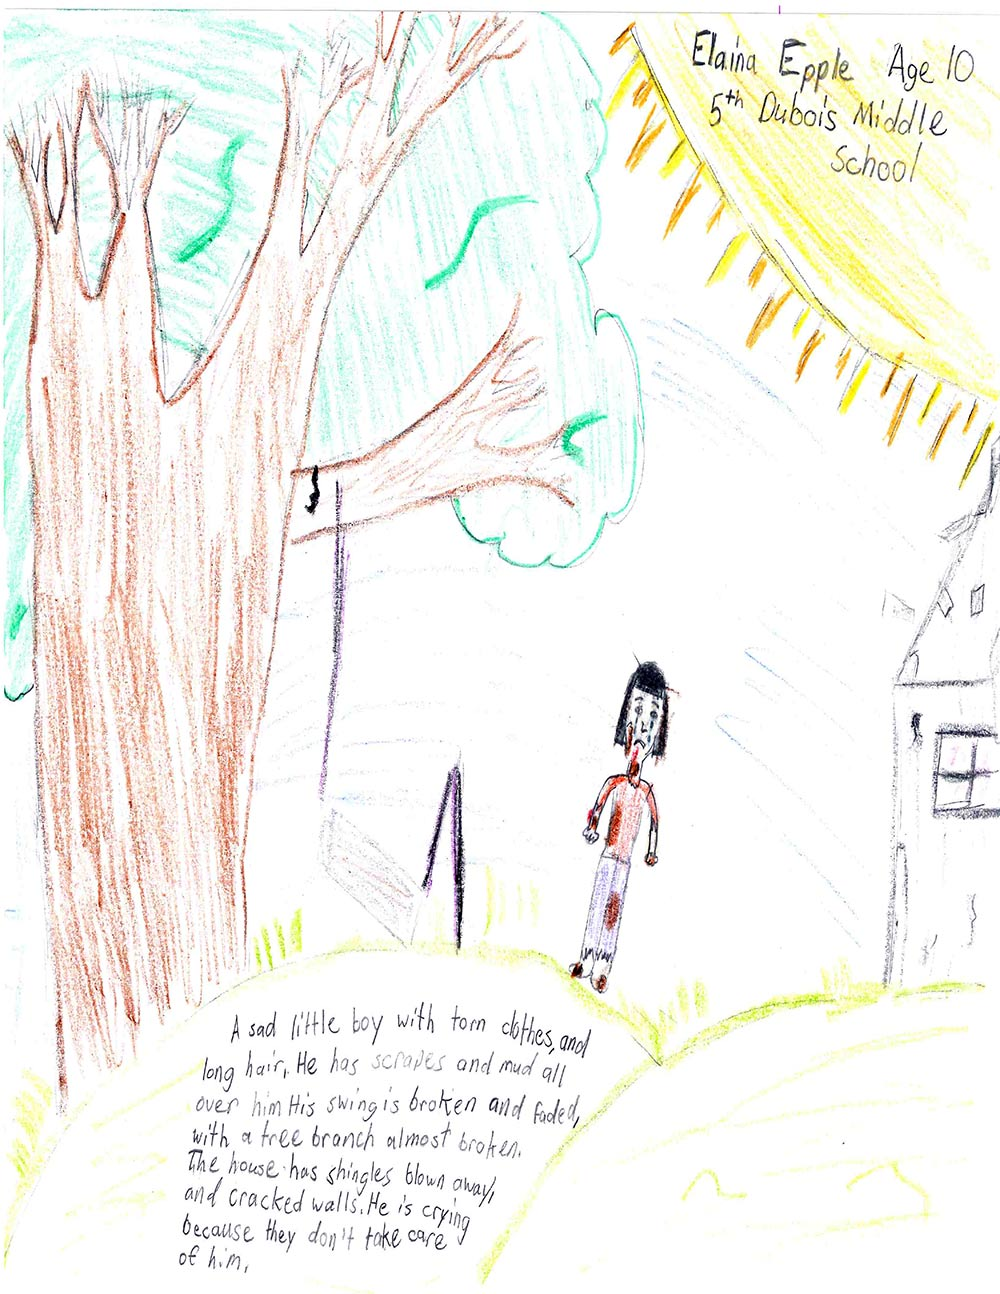 child abuse prevention essay Child abuse: an expositionby dominic ebacherimagine for one moment that you are not yourself any longer visualize instead that you are a young girl old enough to know right from wrong yet still young enough to be terrified by the dark shadows in your room it is a cool autumn night and your parents have opted to attend.